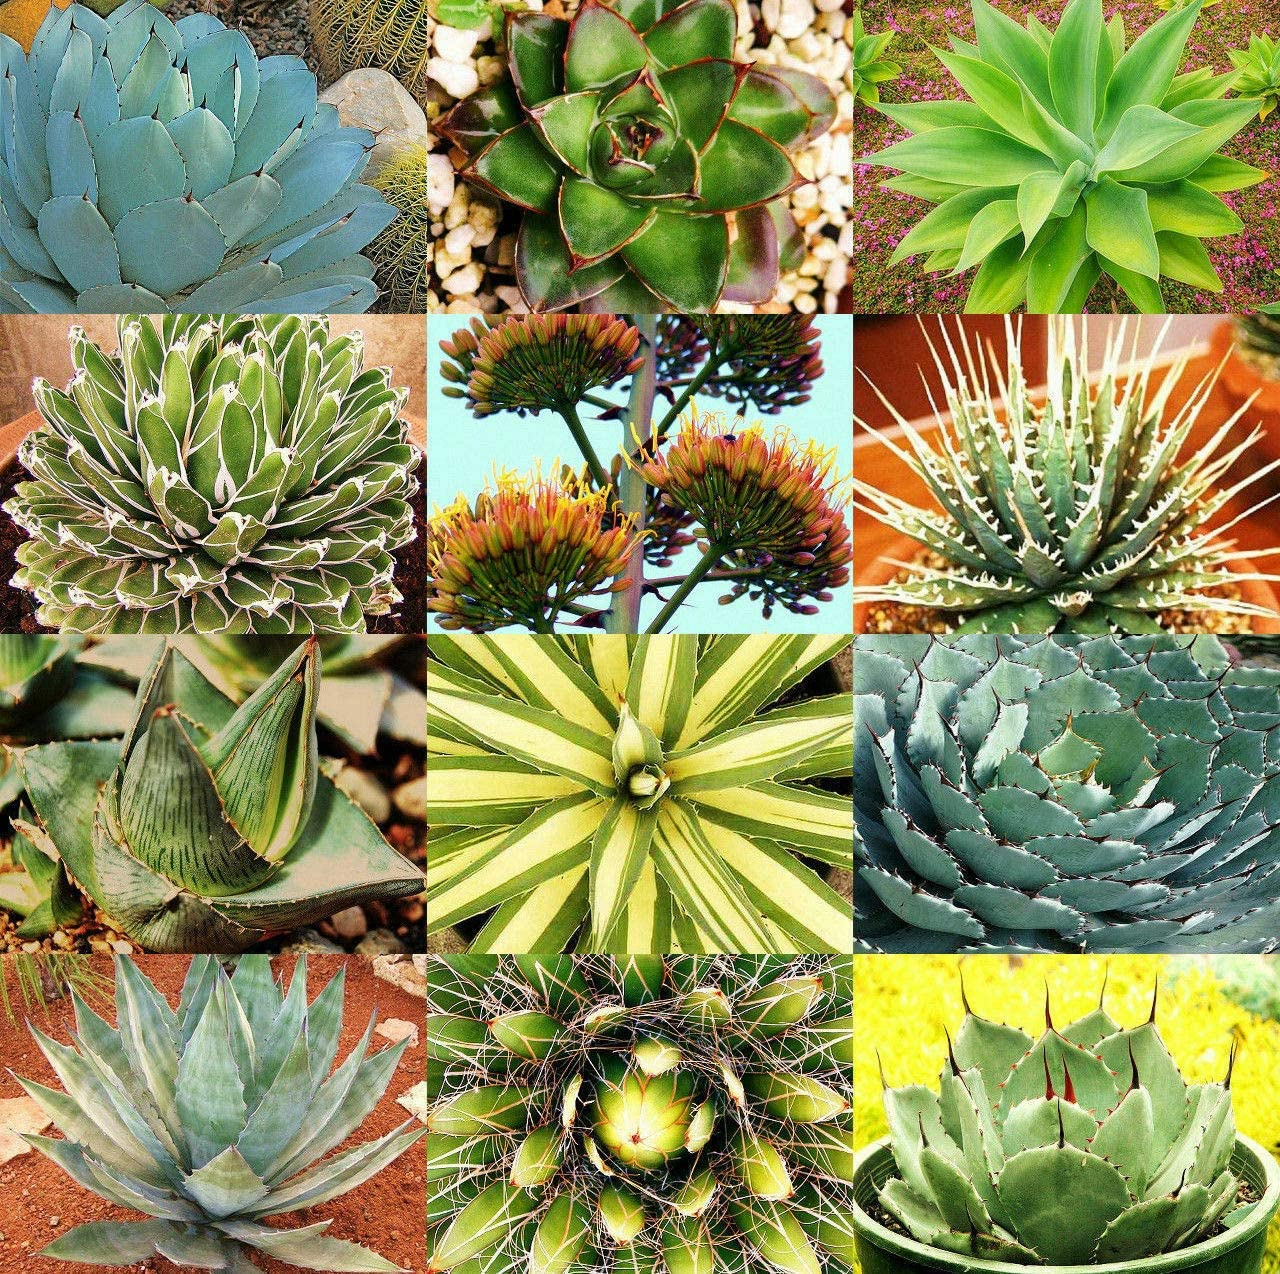 FIOLTY Seeds Package: 100 Seeds Mix Agave, Succulent Seeds, Succulent Seeds, Succulents Seed